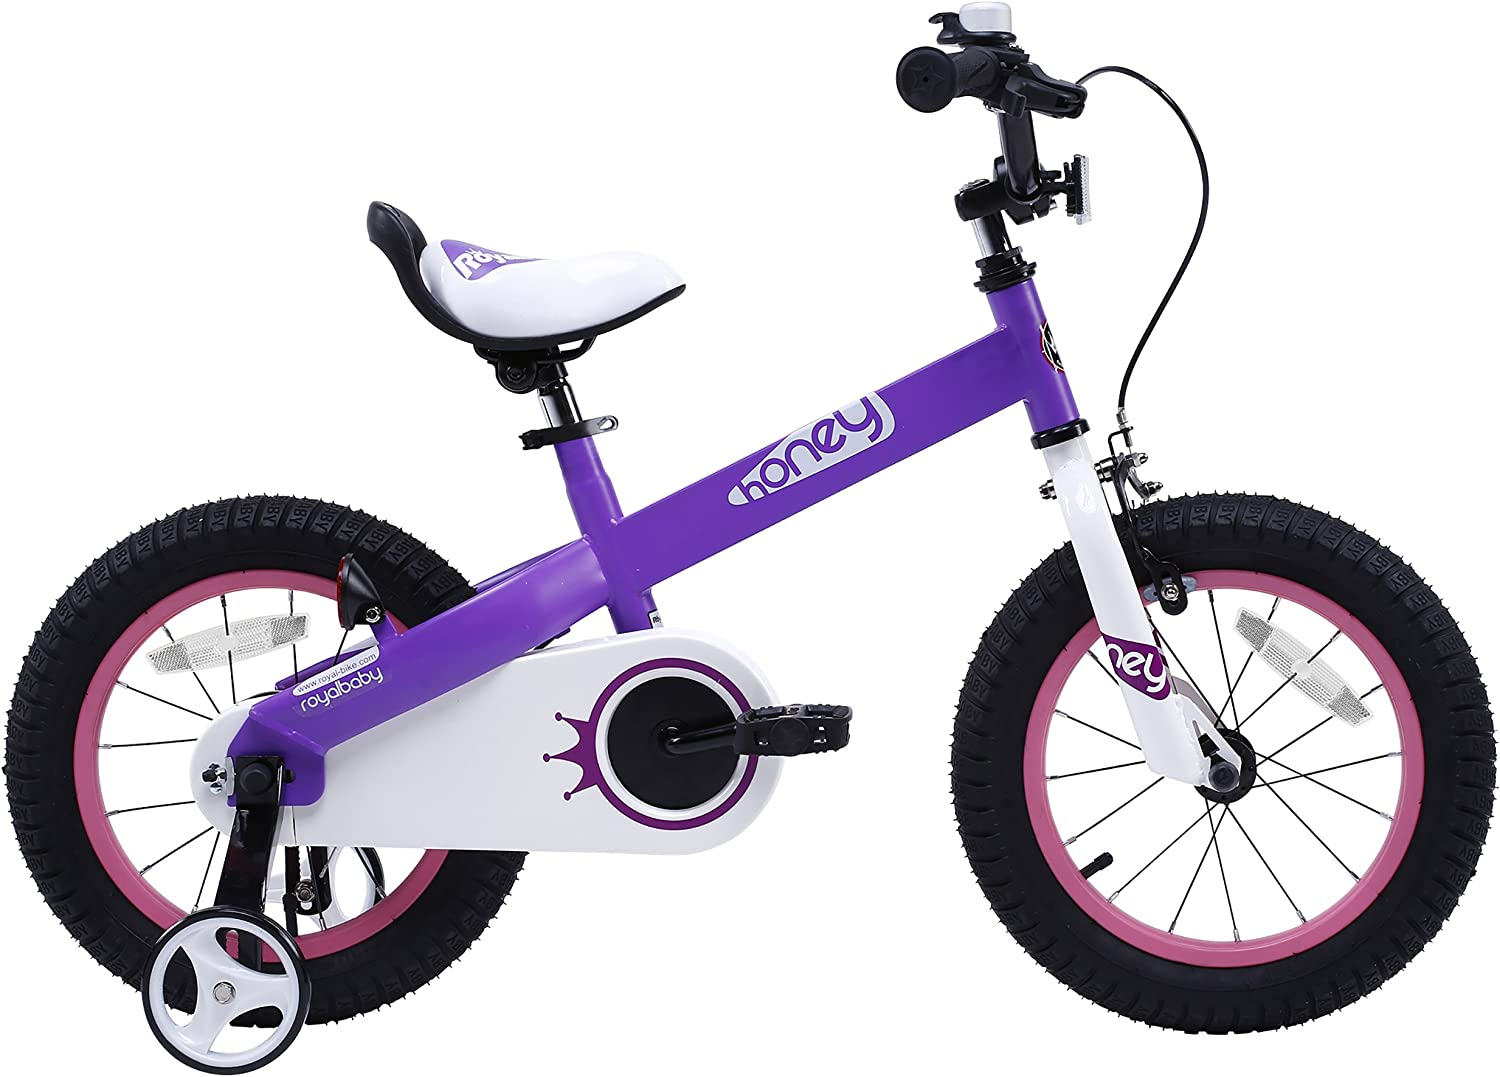 RoyalBaby Honey Buttons Kids Bike, for Boys Girls, with Training Wheels or Kickstand